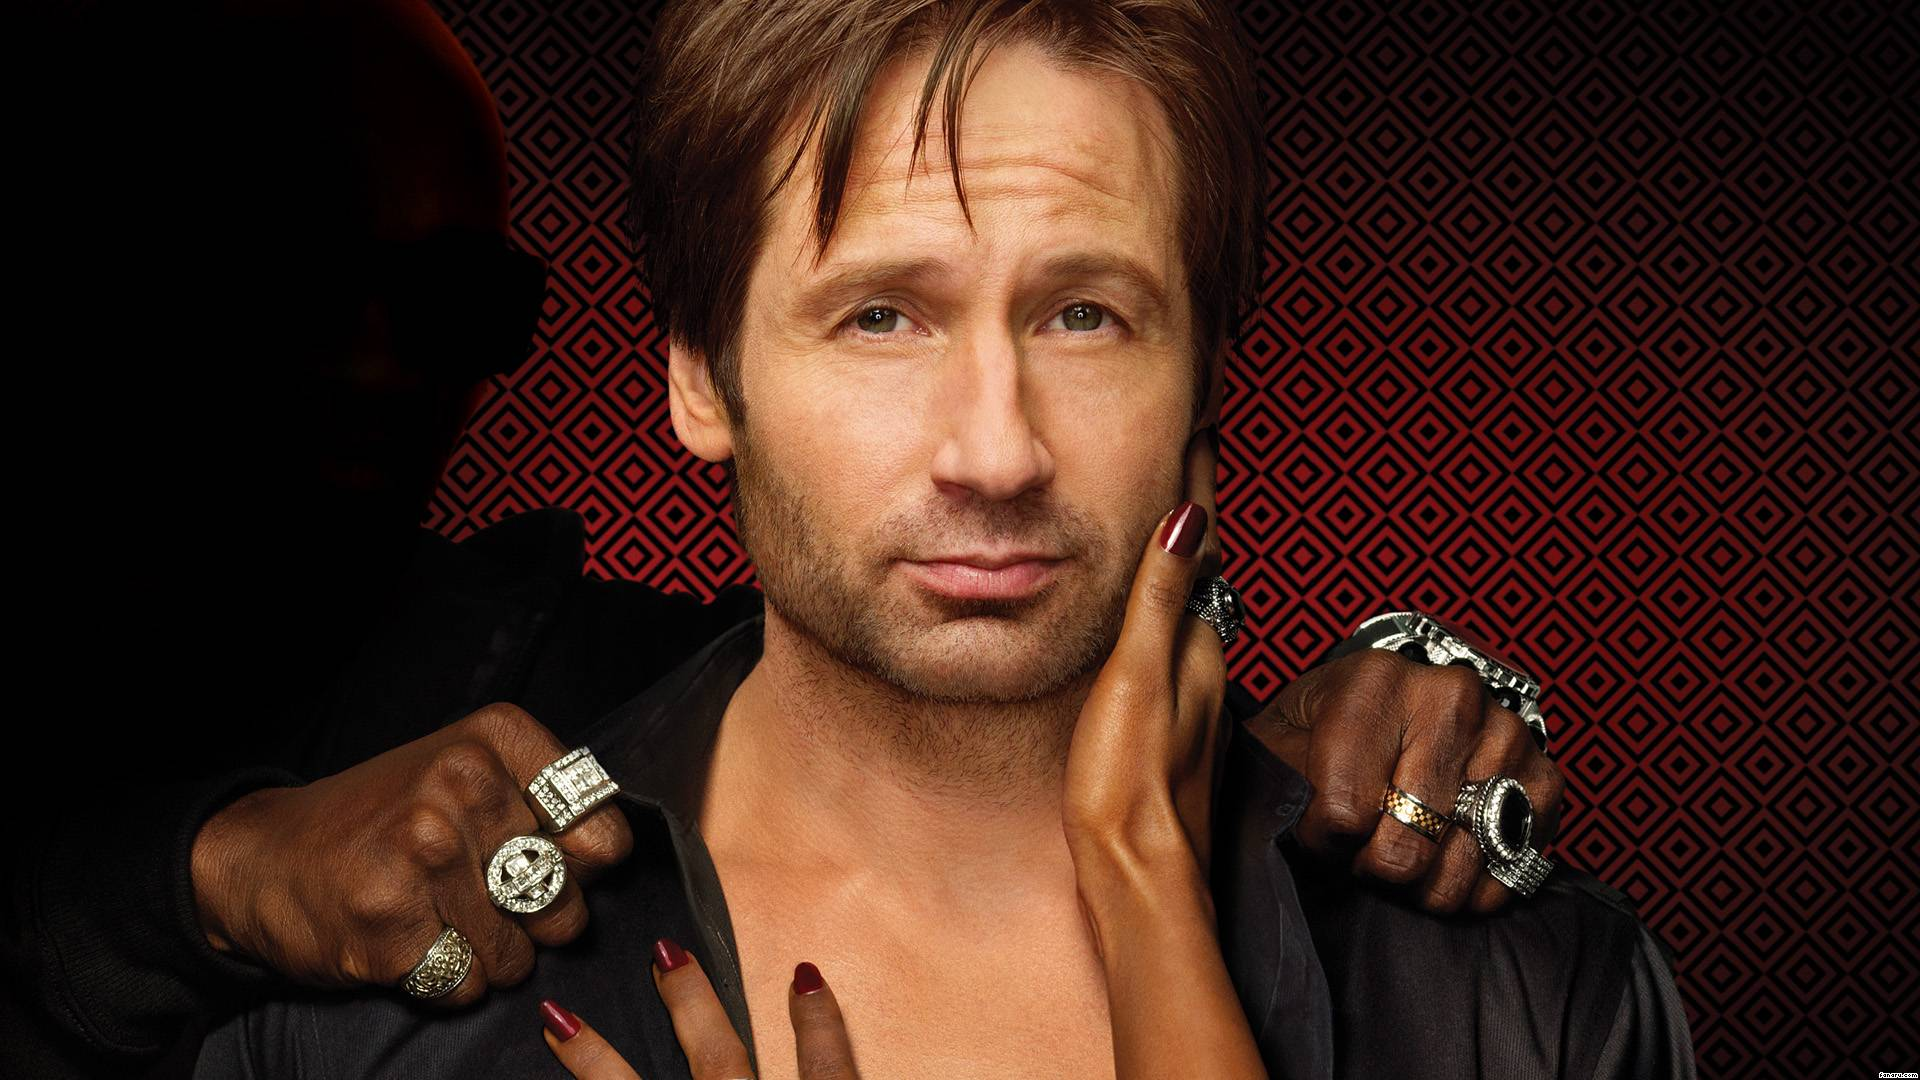 Hank Moody Wallpapers Wallpaper Cave HD Wallpapers Download Free Images Wallpaper [1000image.com]